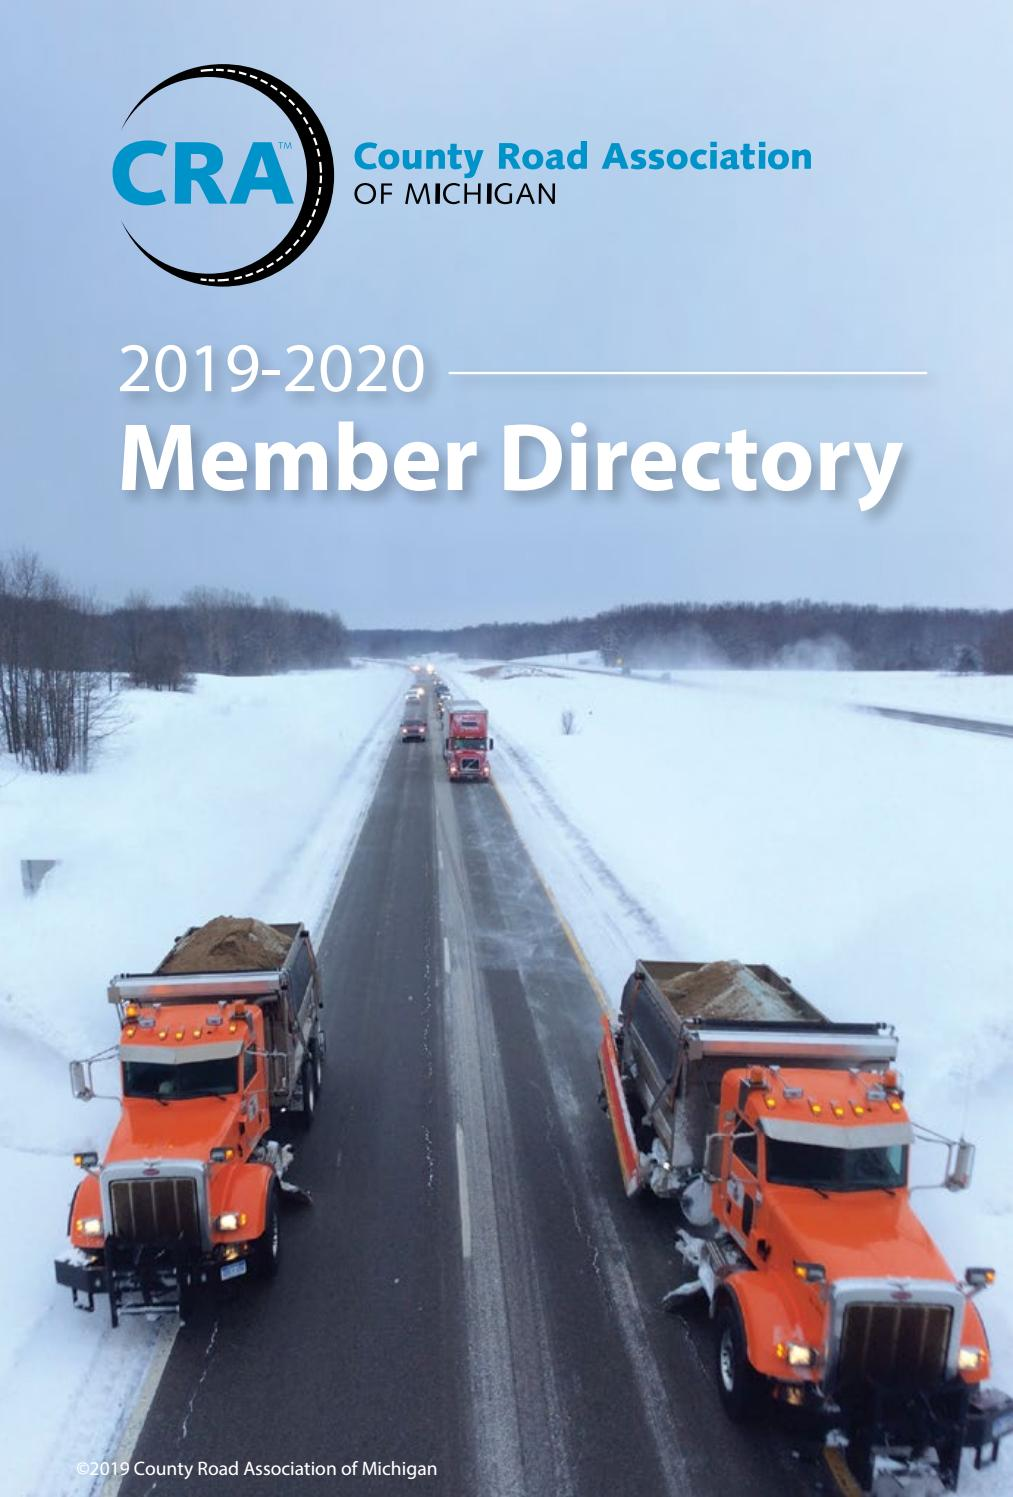 2019 2020 Cra Member Directory By County Road Association Of Michigan Issuu The county seat is muskegon. 2019 2020 cra member directory by